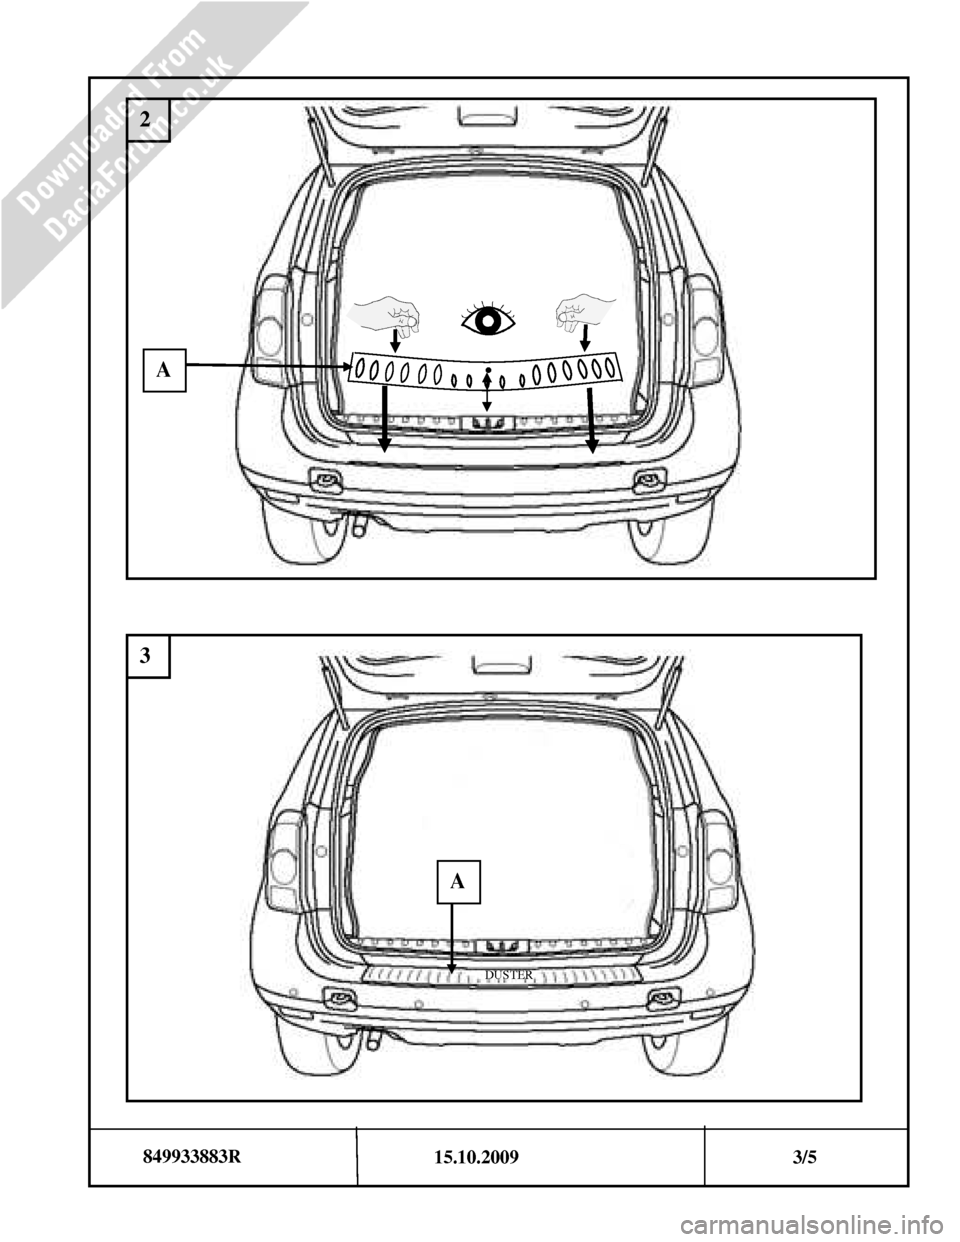 DACIA DUSTER 2010 1.G Bootlip Protector Fitting Guide Workshop Manual, Page 3